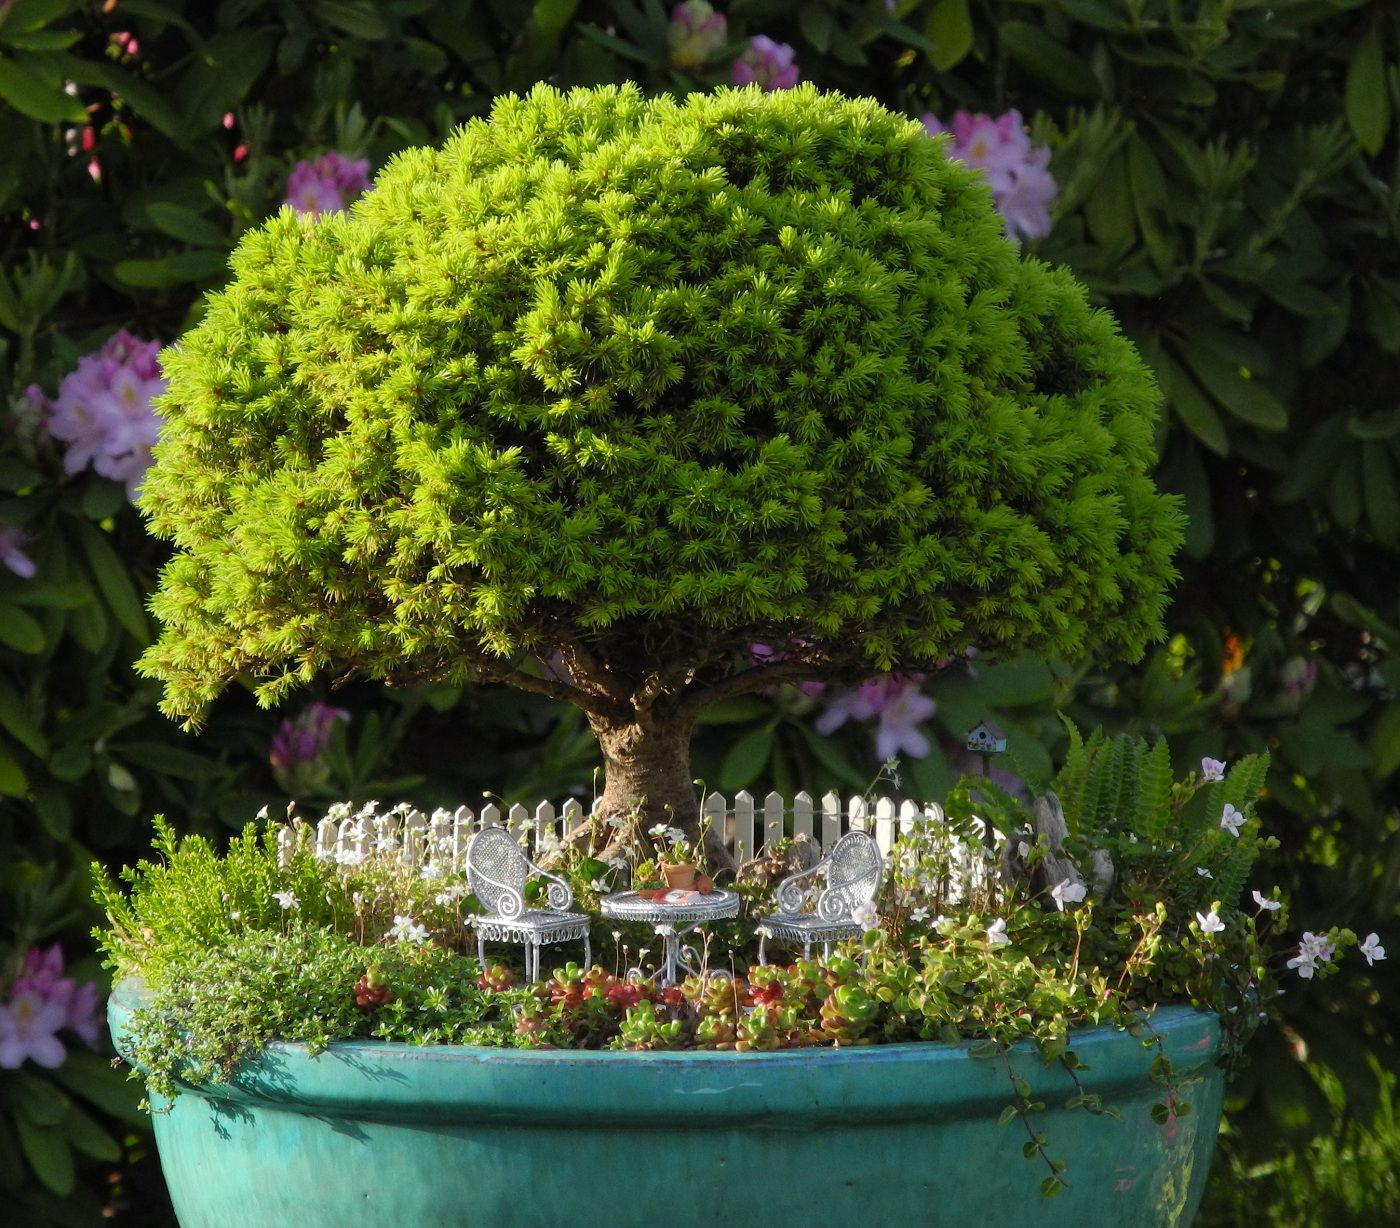 Medium Of Miniature Garden Trees